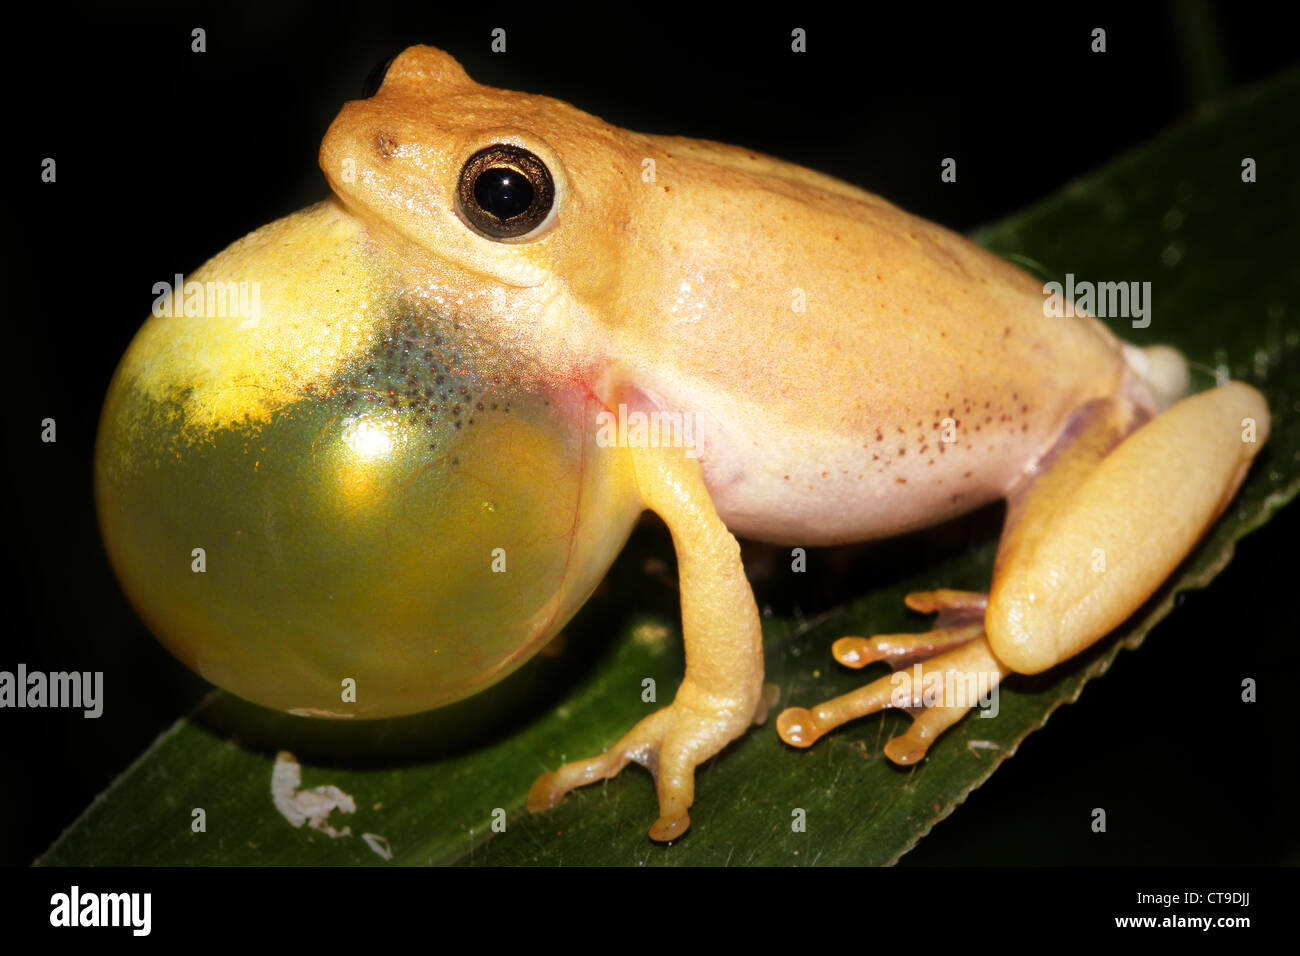 Male Painted Reed Frog Hyperolius Marmoratus Calling During The Night Ct Djj